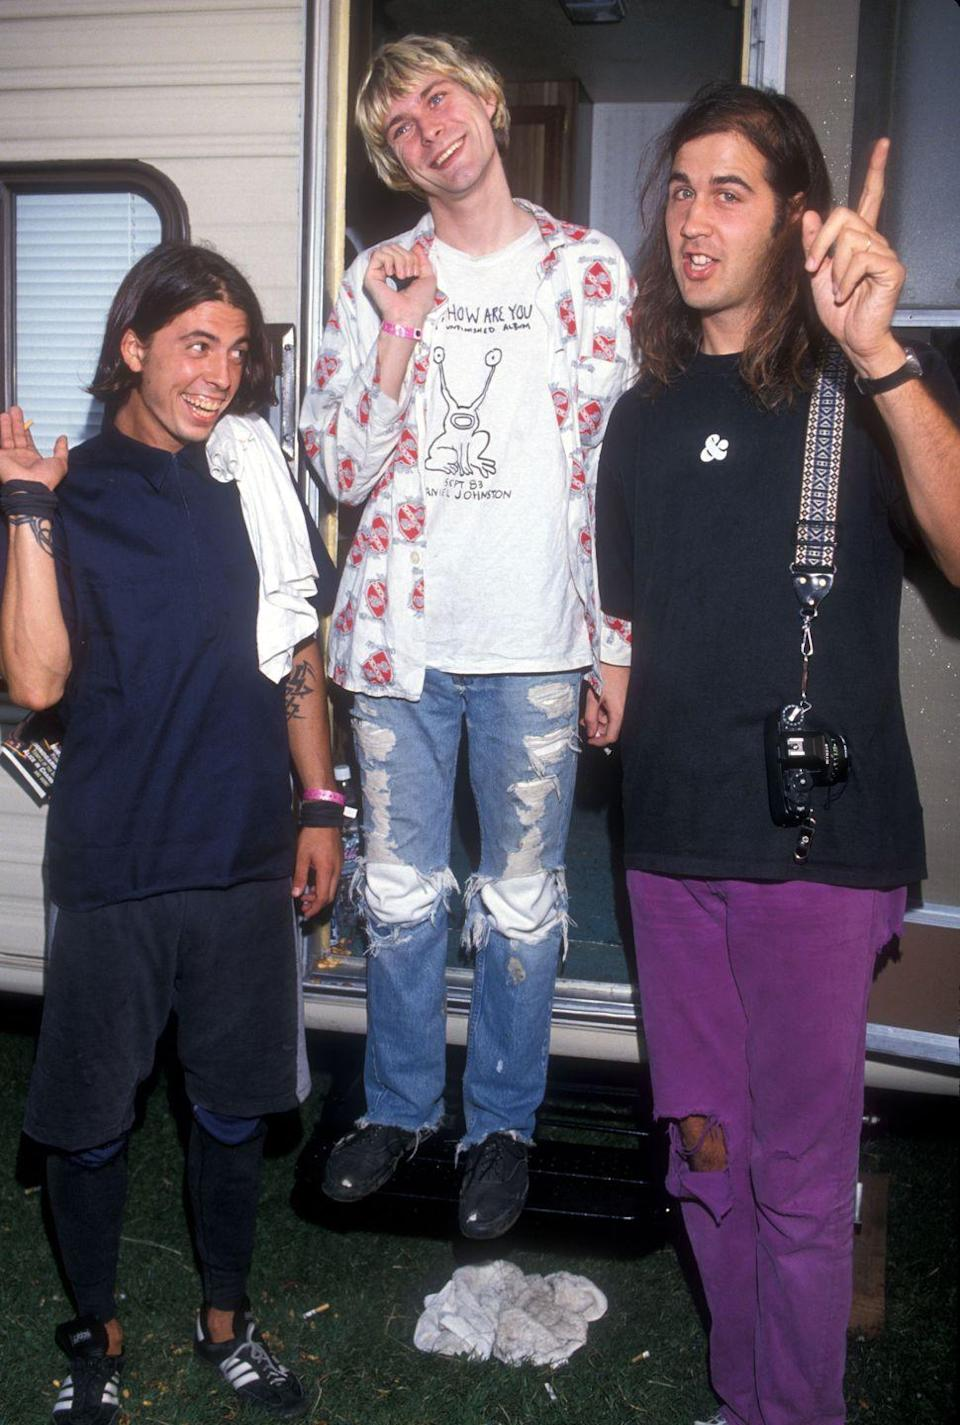 <p>Kurt Cobain, Dave Grohl, and Krist Novoselic of Nirvana emerge from an RV at the 1992 MTV VMA awards. </p>